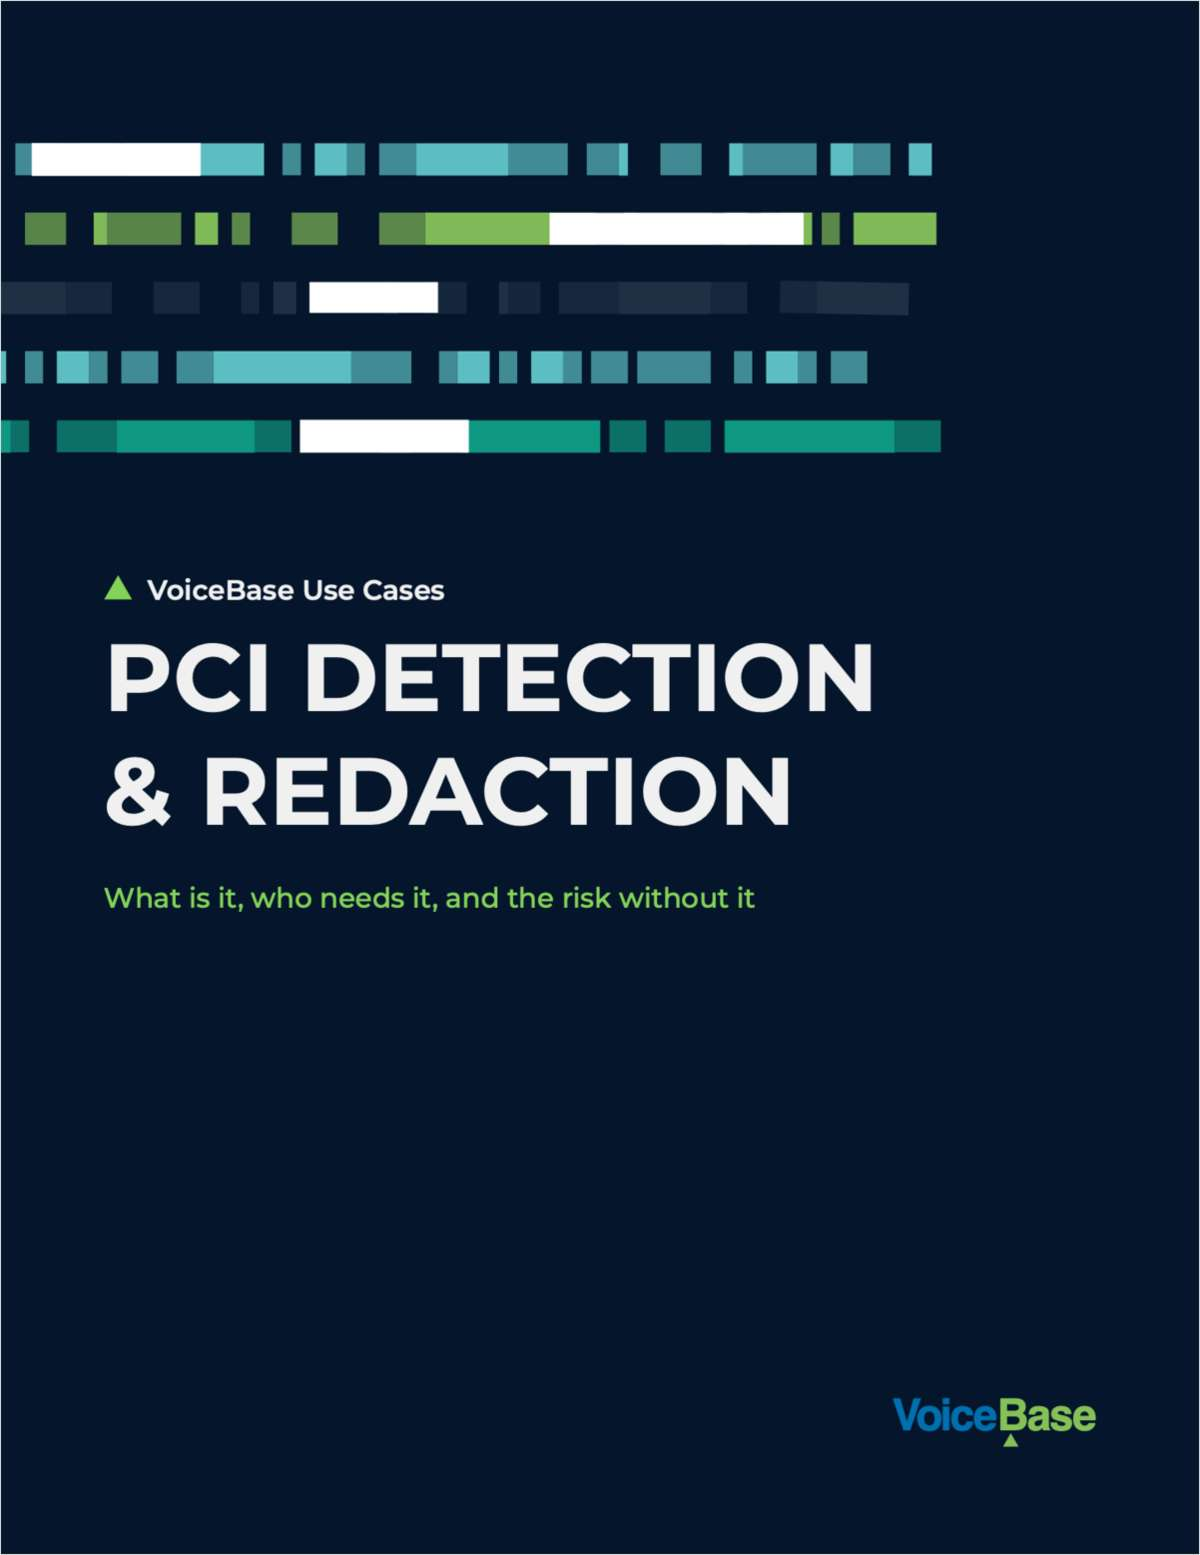 PCI Redaction Overview: How Call Centers Stay Compliant